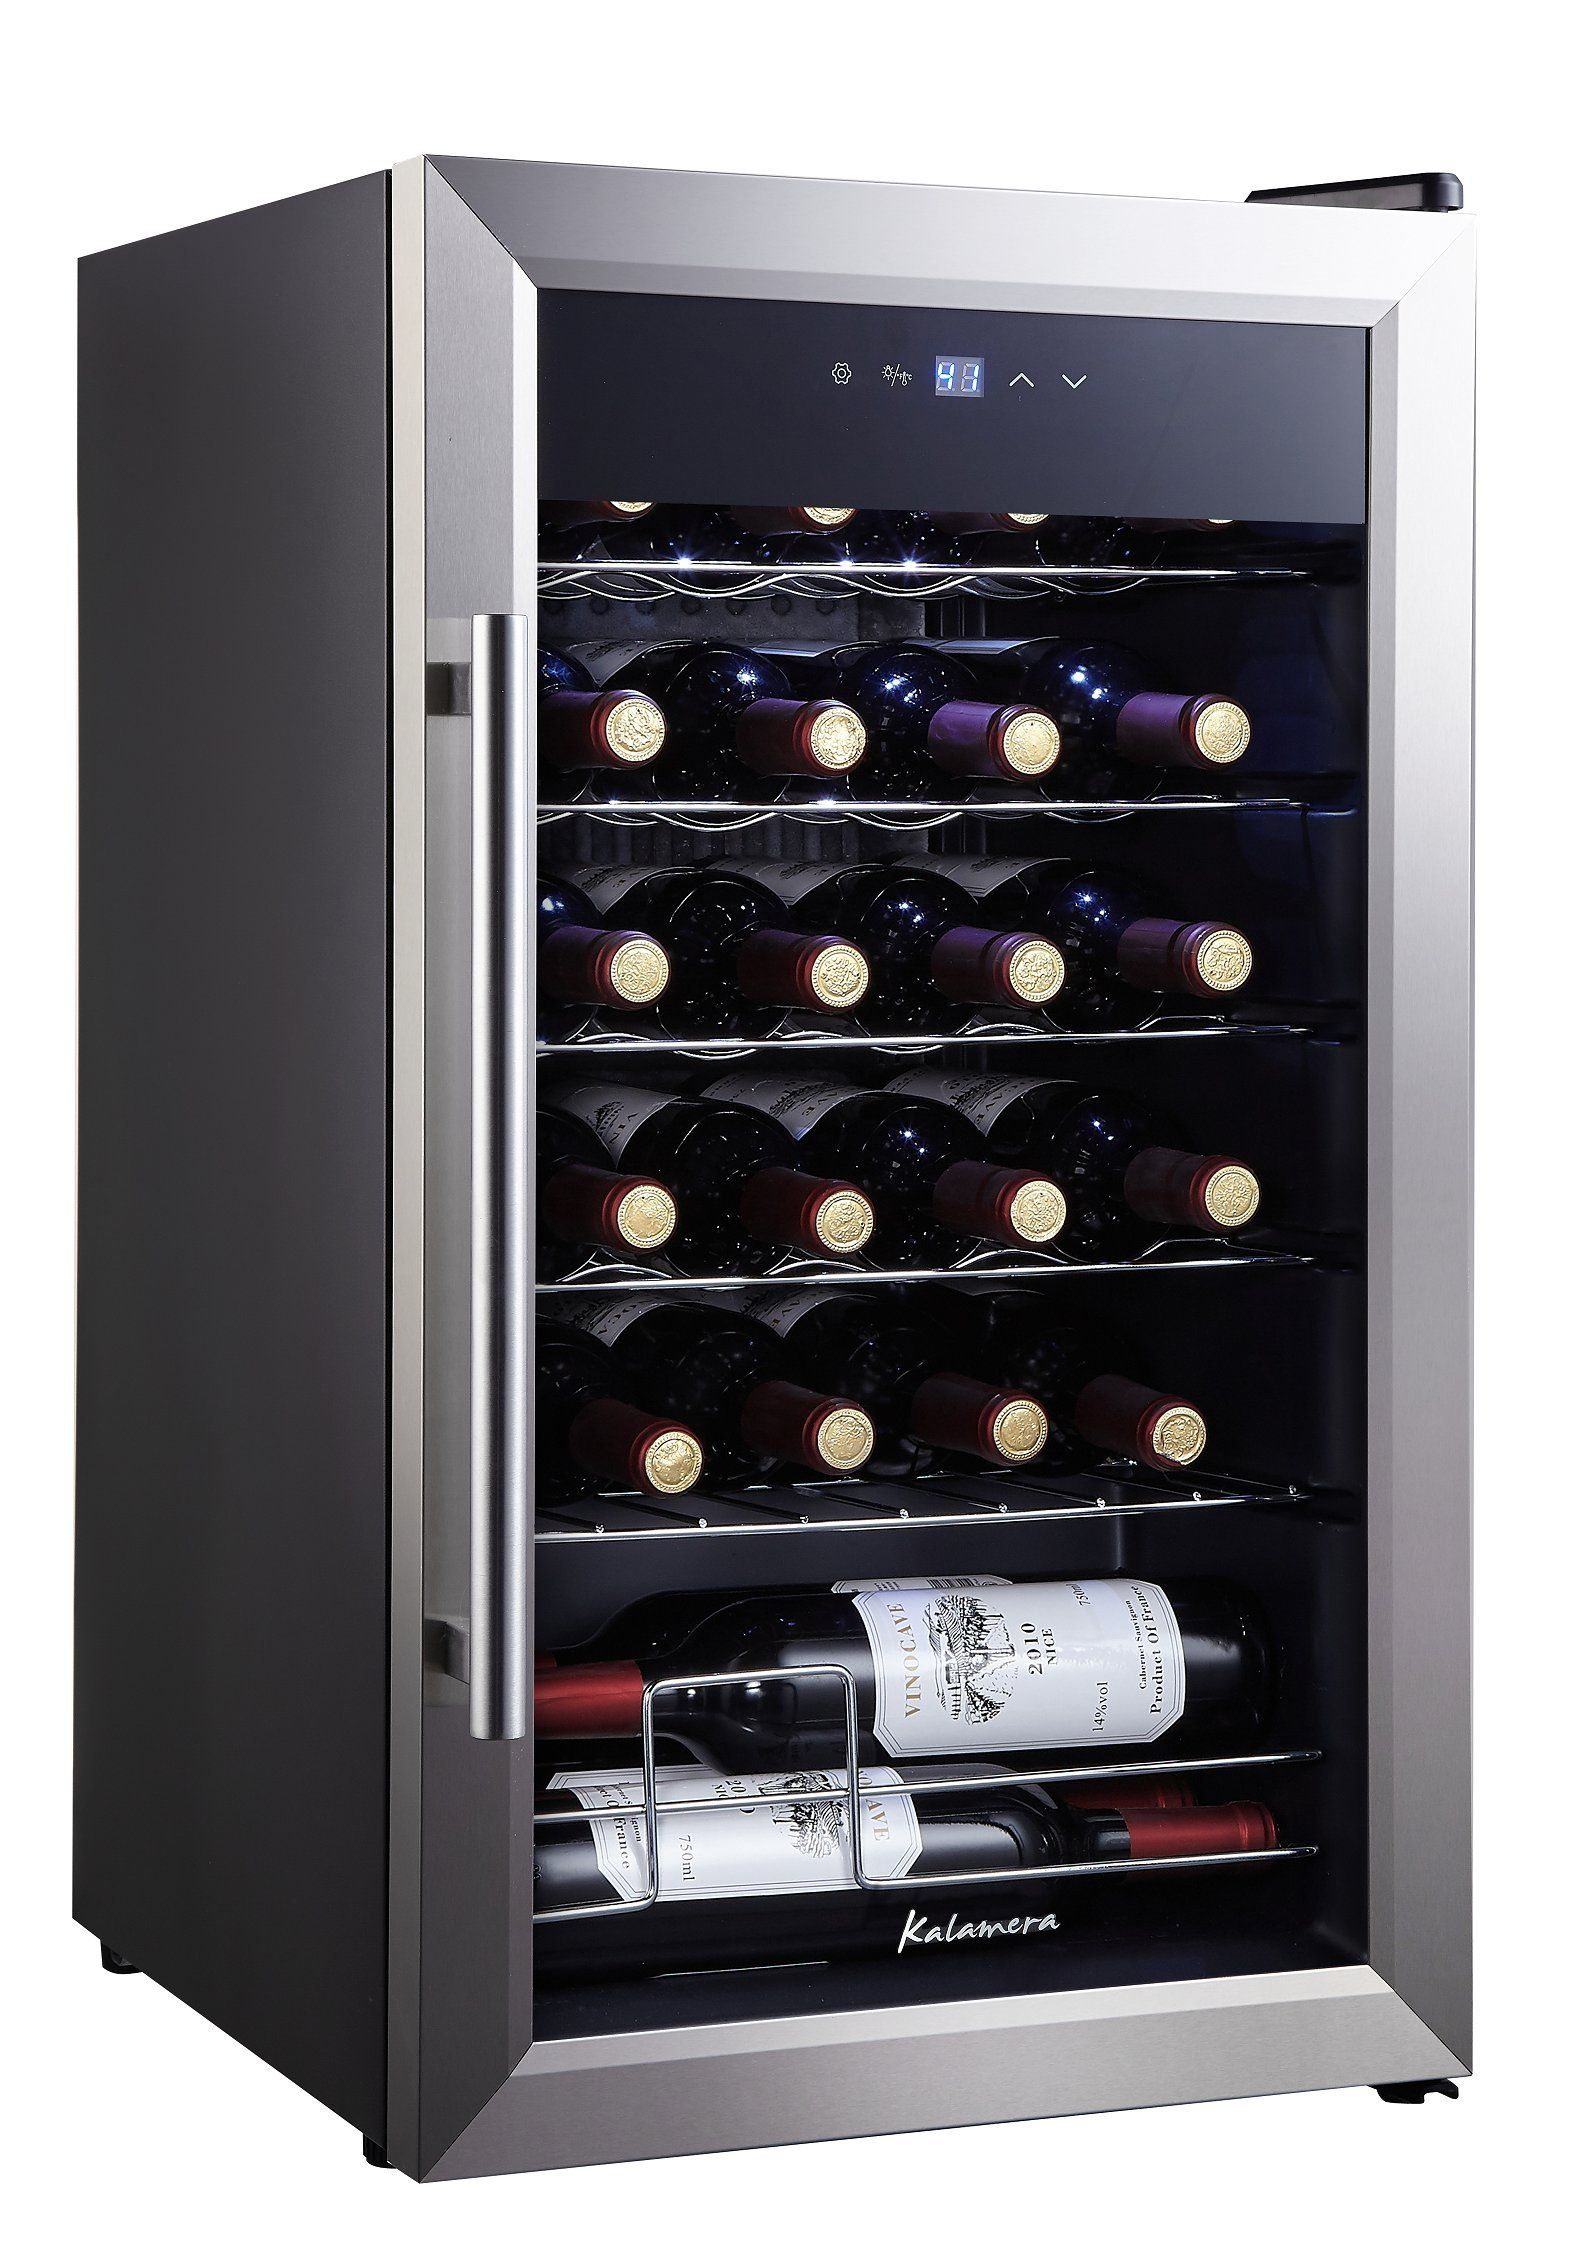 Kalamera Krc24ss 24 Bottle Single Zone Wine Cooler Small Fridge Black To View Further For This Item Visit The Small Wine Fridge Wine Dispenser Wine Cooler